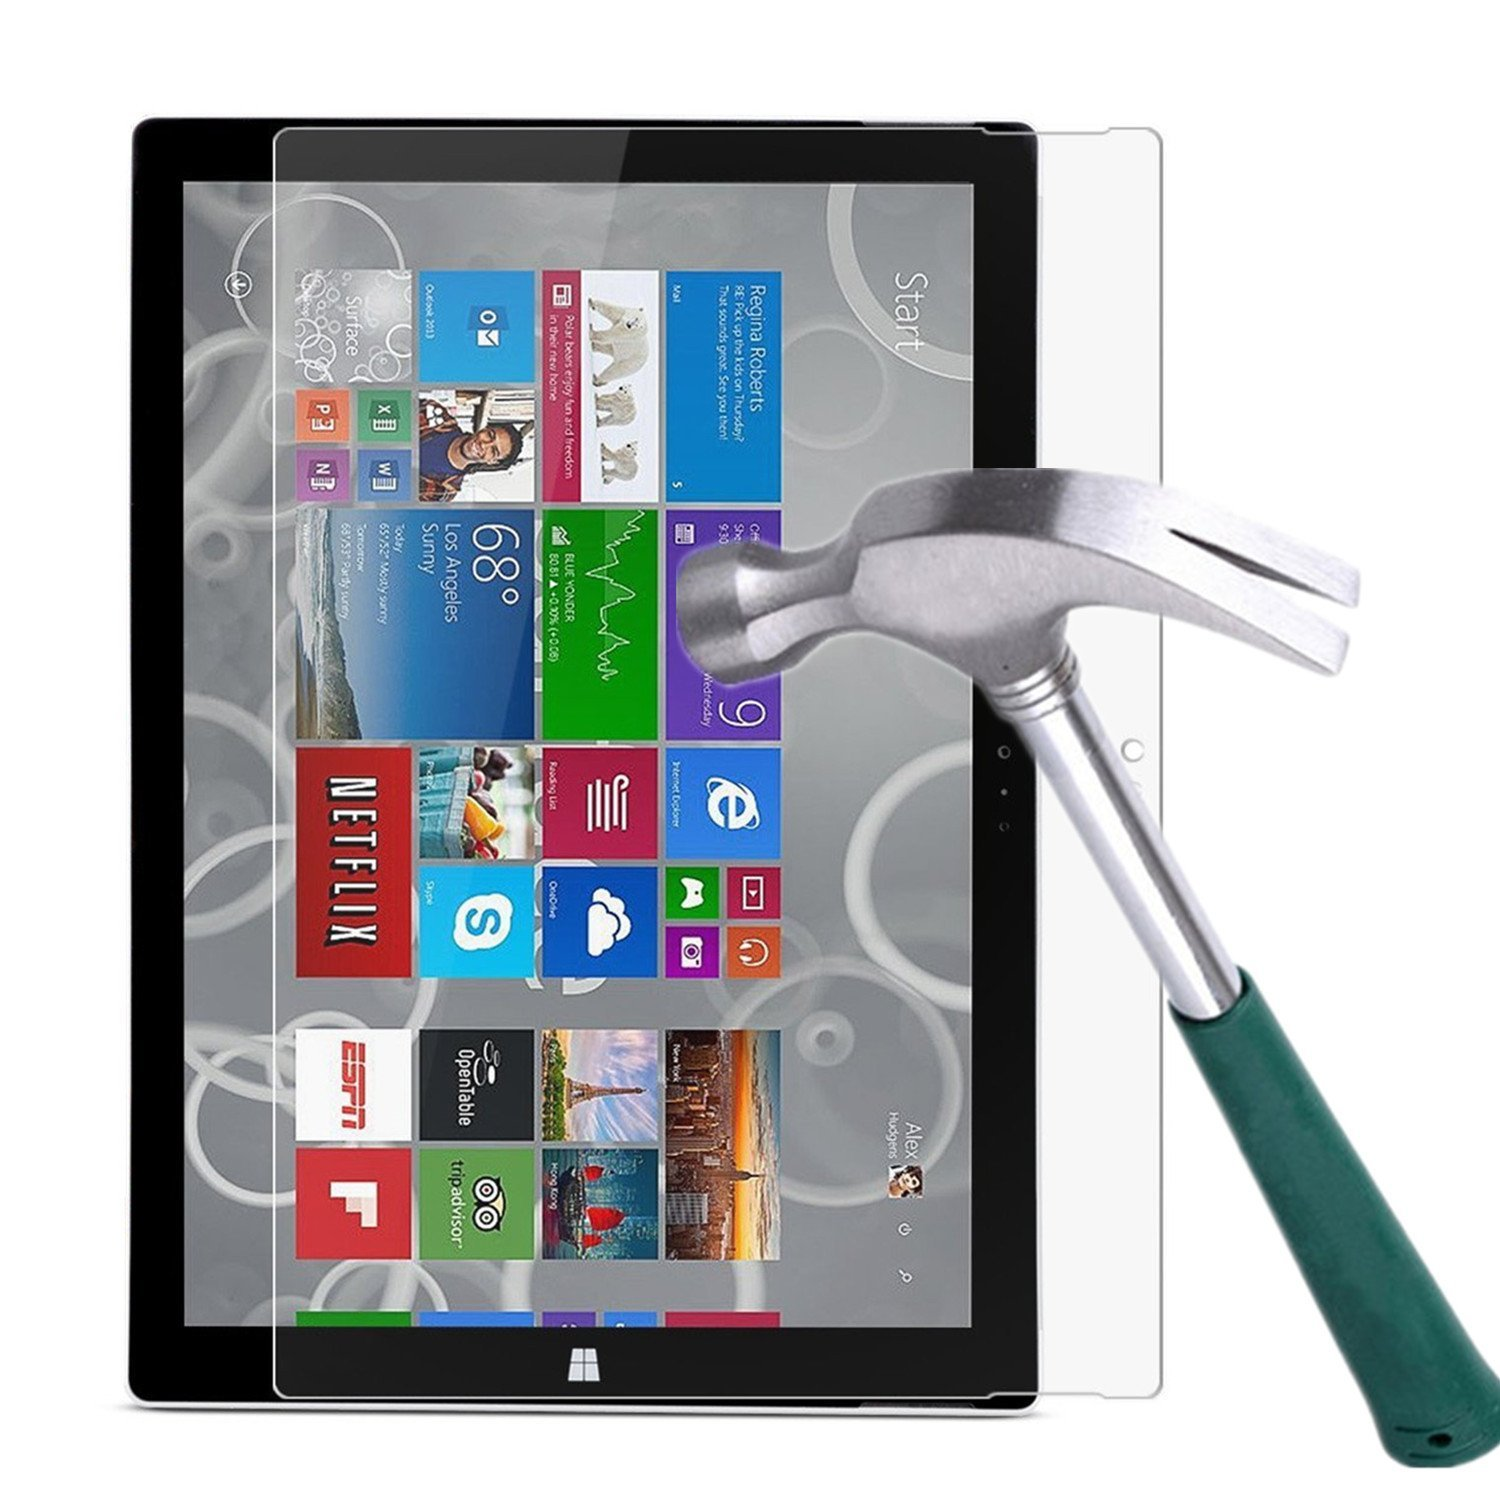 Surface Pro 3 Screen Protector,TANTEK [HD-Clear][Anti-Scratch][Anti-Glare][Anti-Fingerprint] Tempered Glass Screen Protector for Microsoft Surface Pro 3 12 inch (2014) ,-[1Pack]